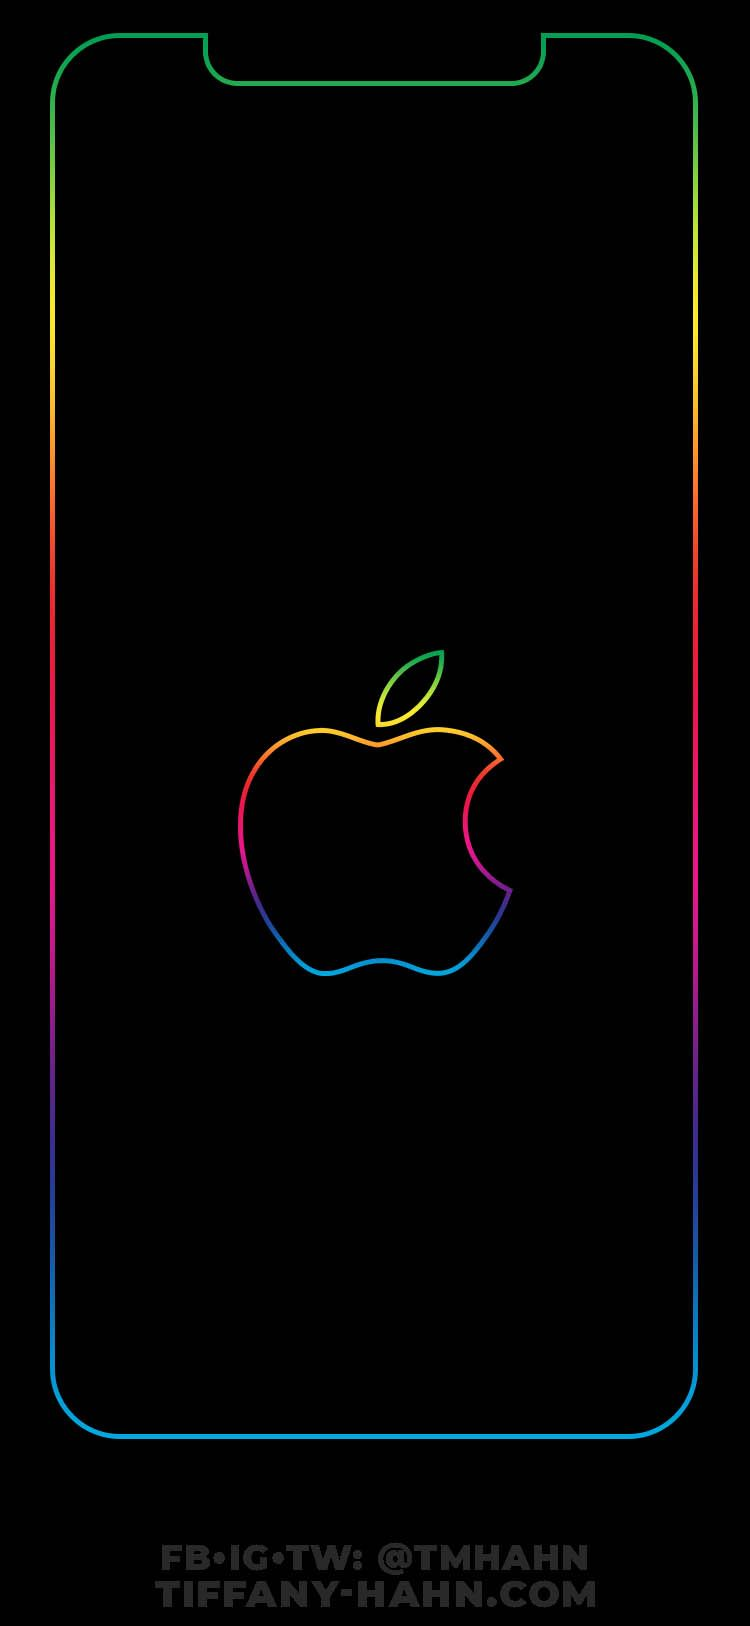 This Wallpaper Will Perfectly Fit The Iphone Xs Max In Zoomed Mode